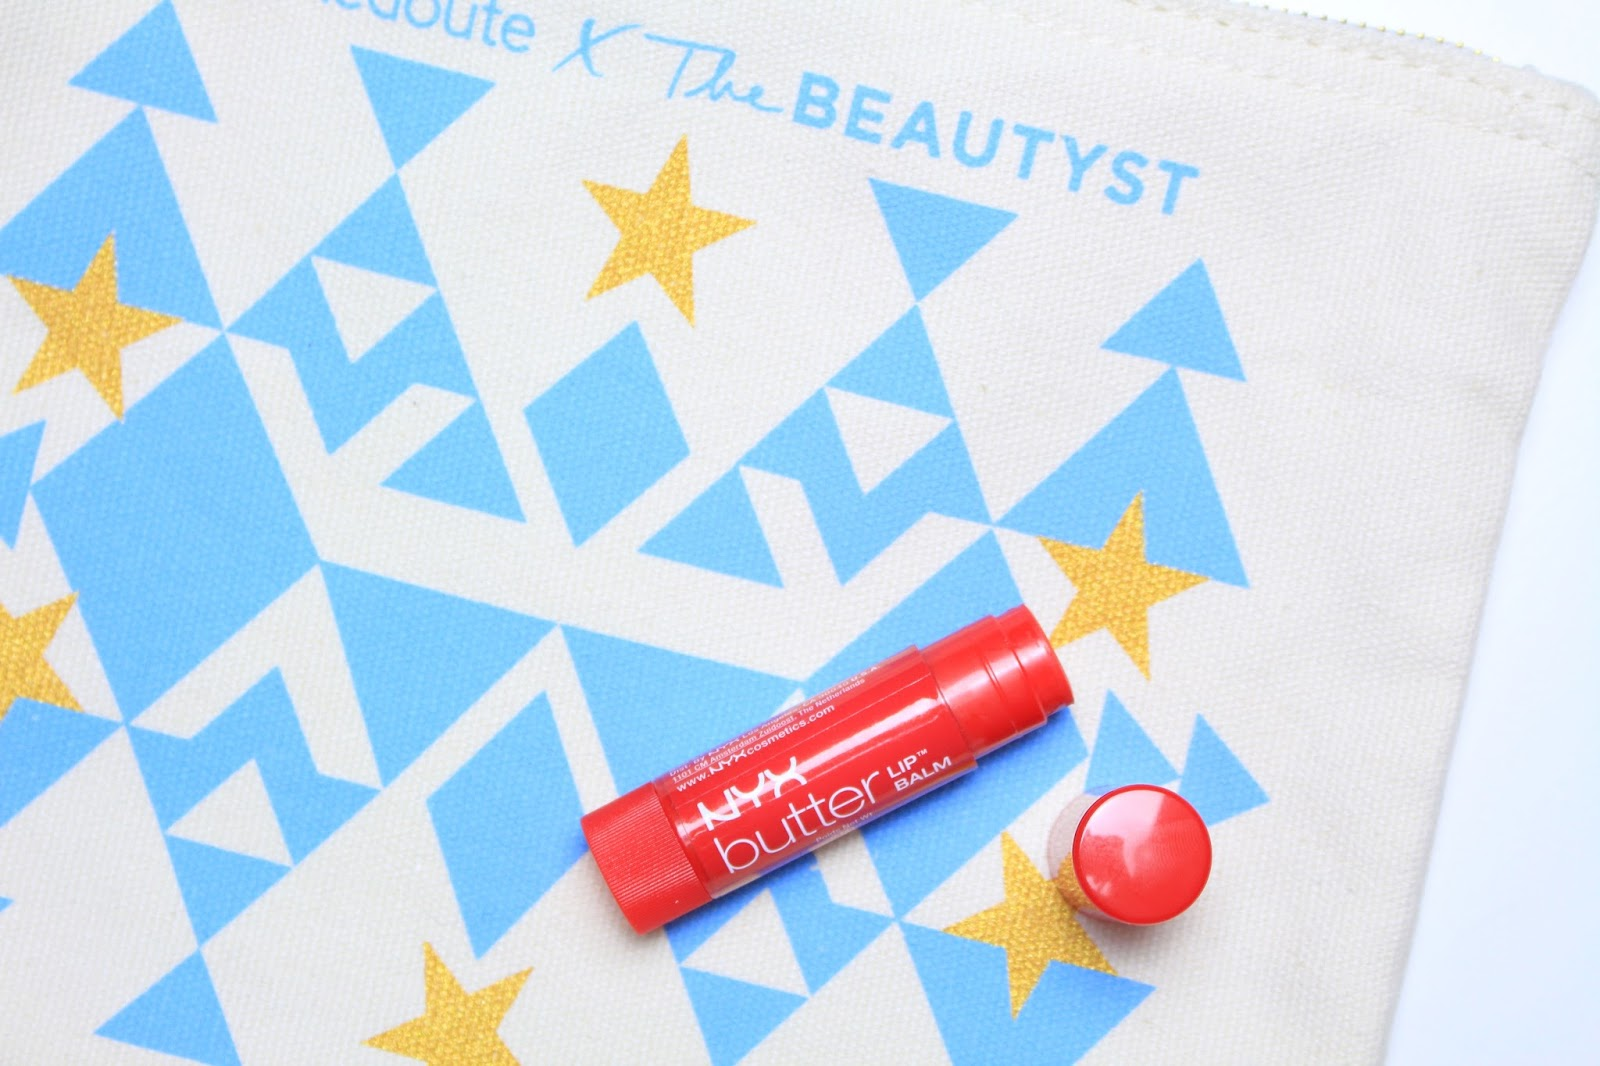 The Beautyst La Redoute